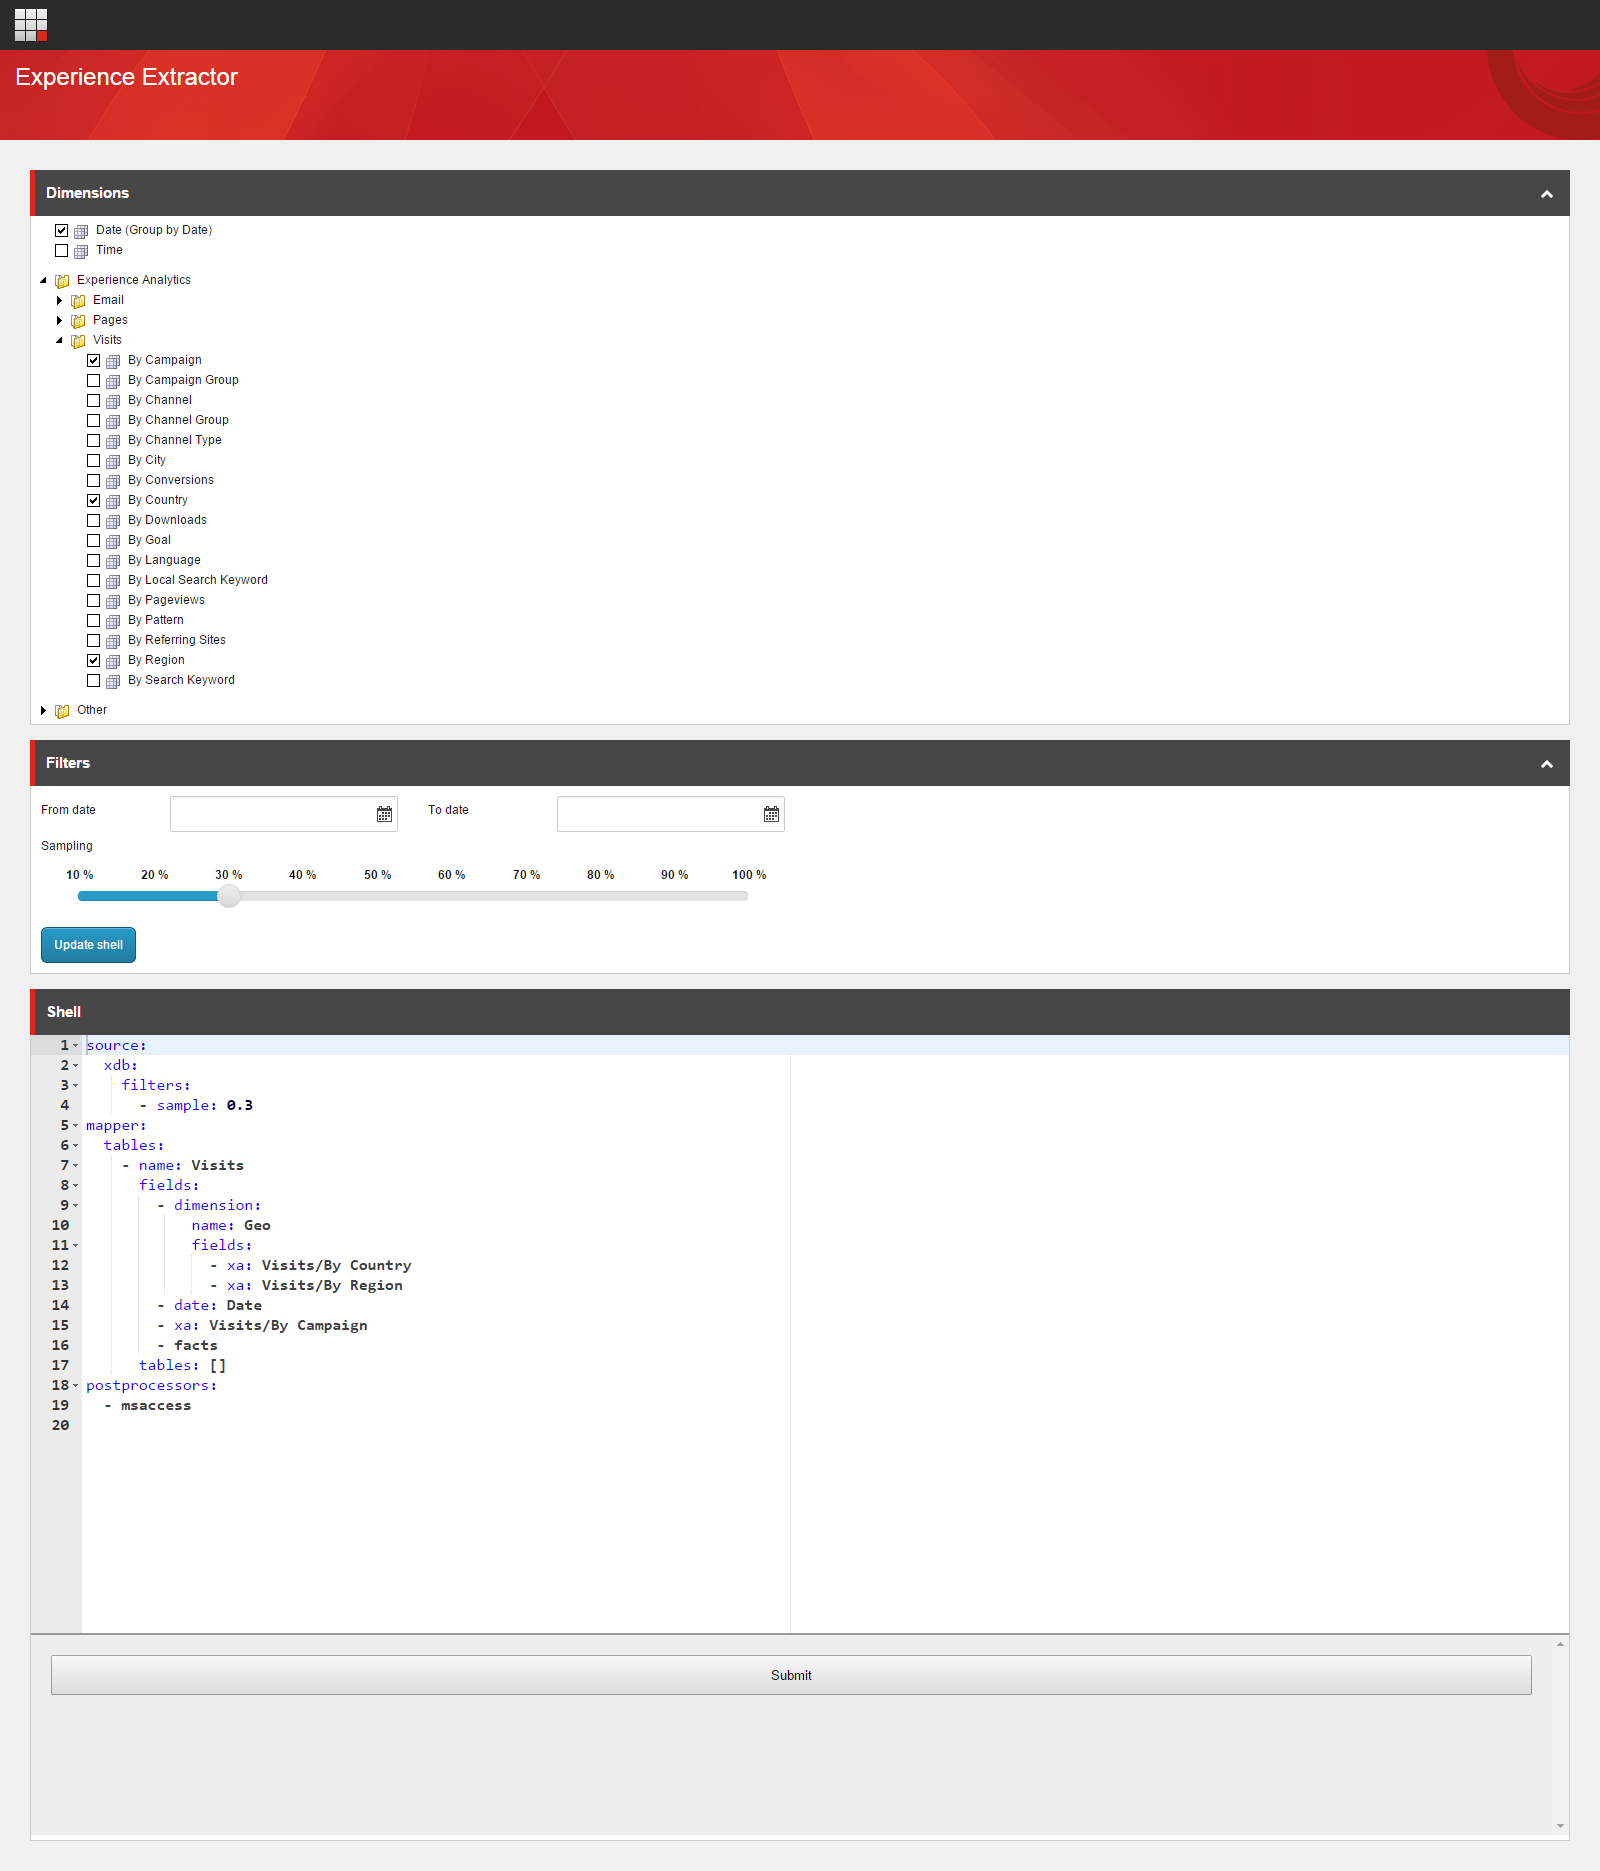 Home · Sitecore/experience-extractor Wiki · GitHub